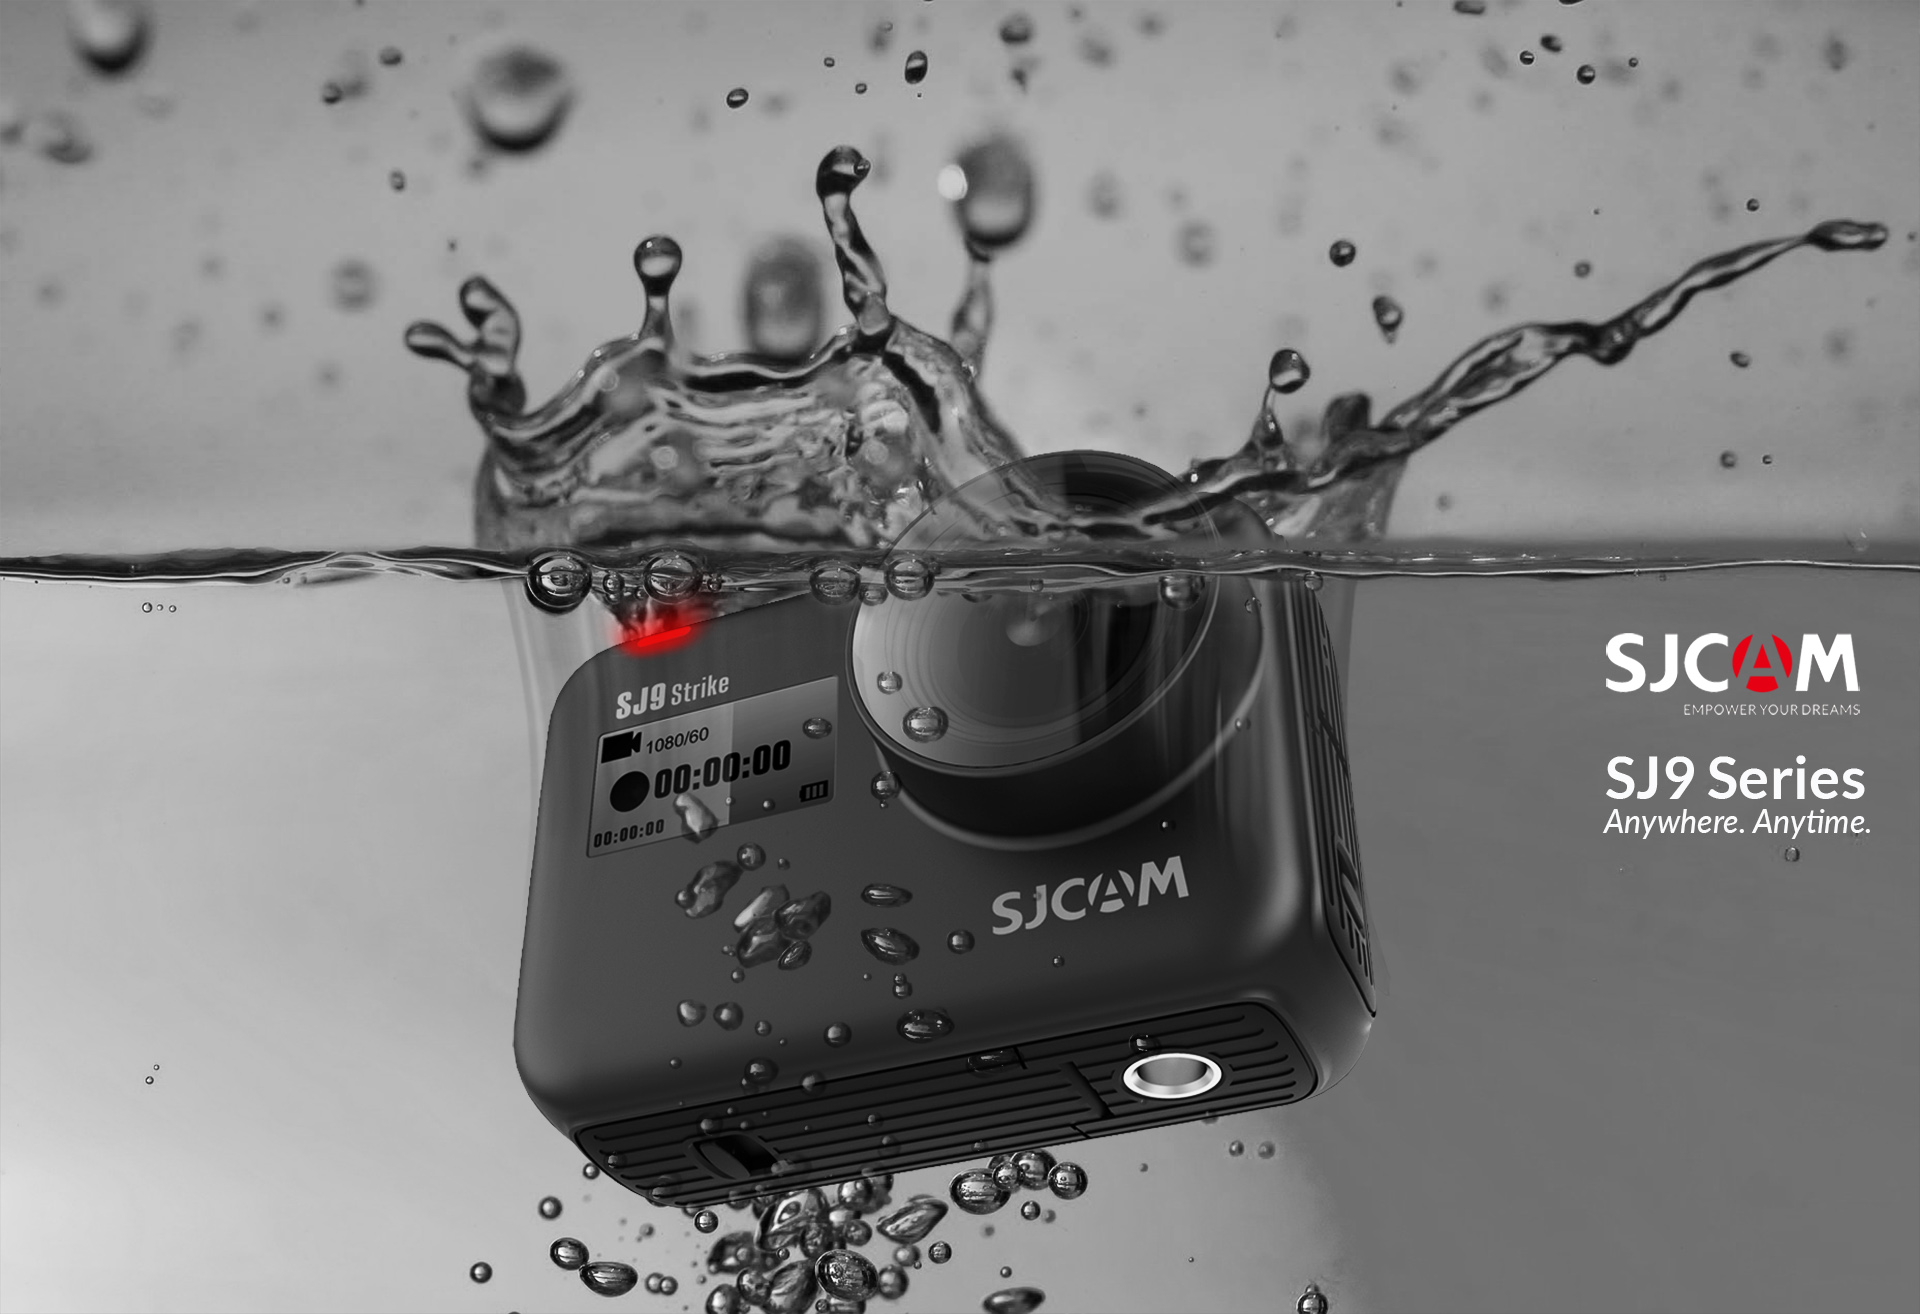 The SJ9 Series. All New SJCAM Superpowers.